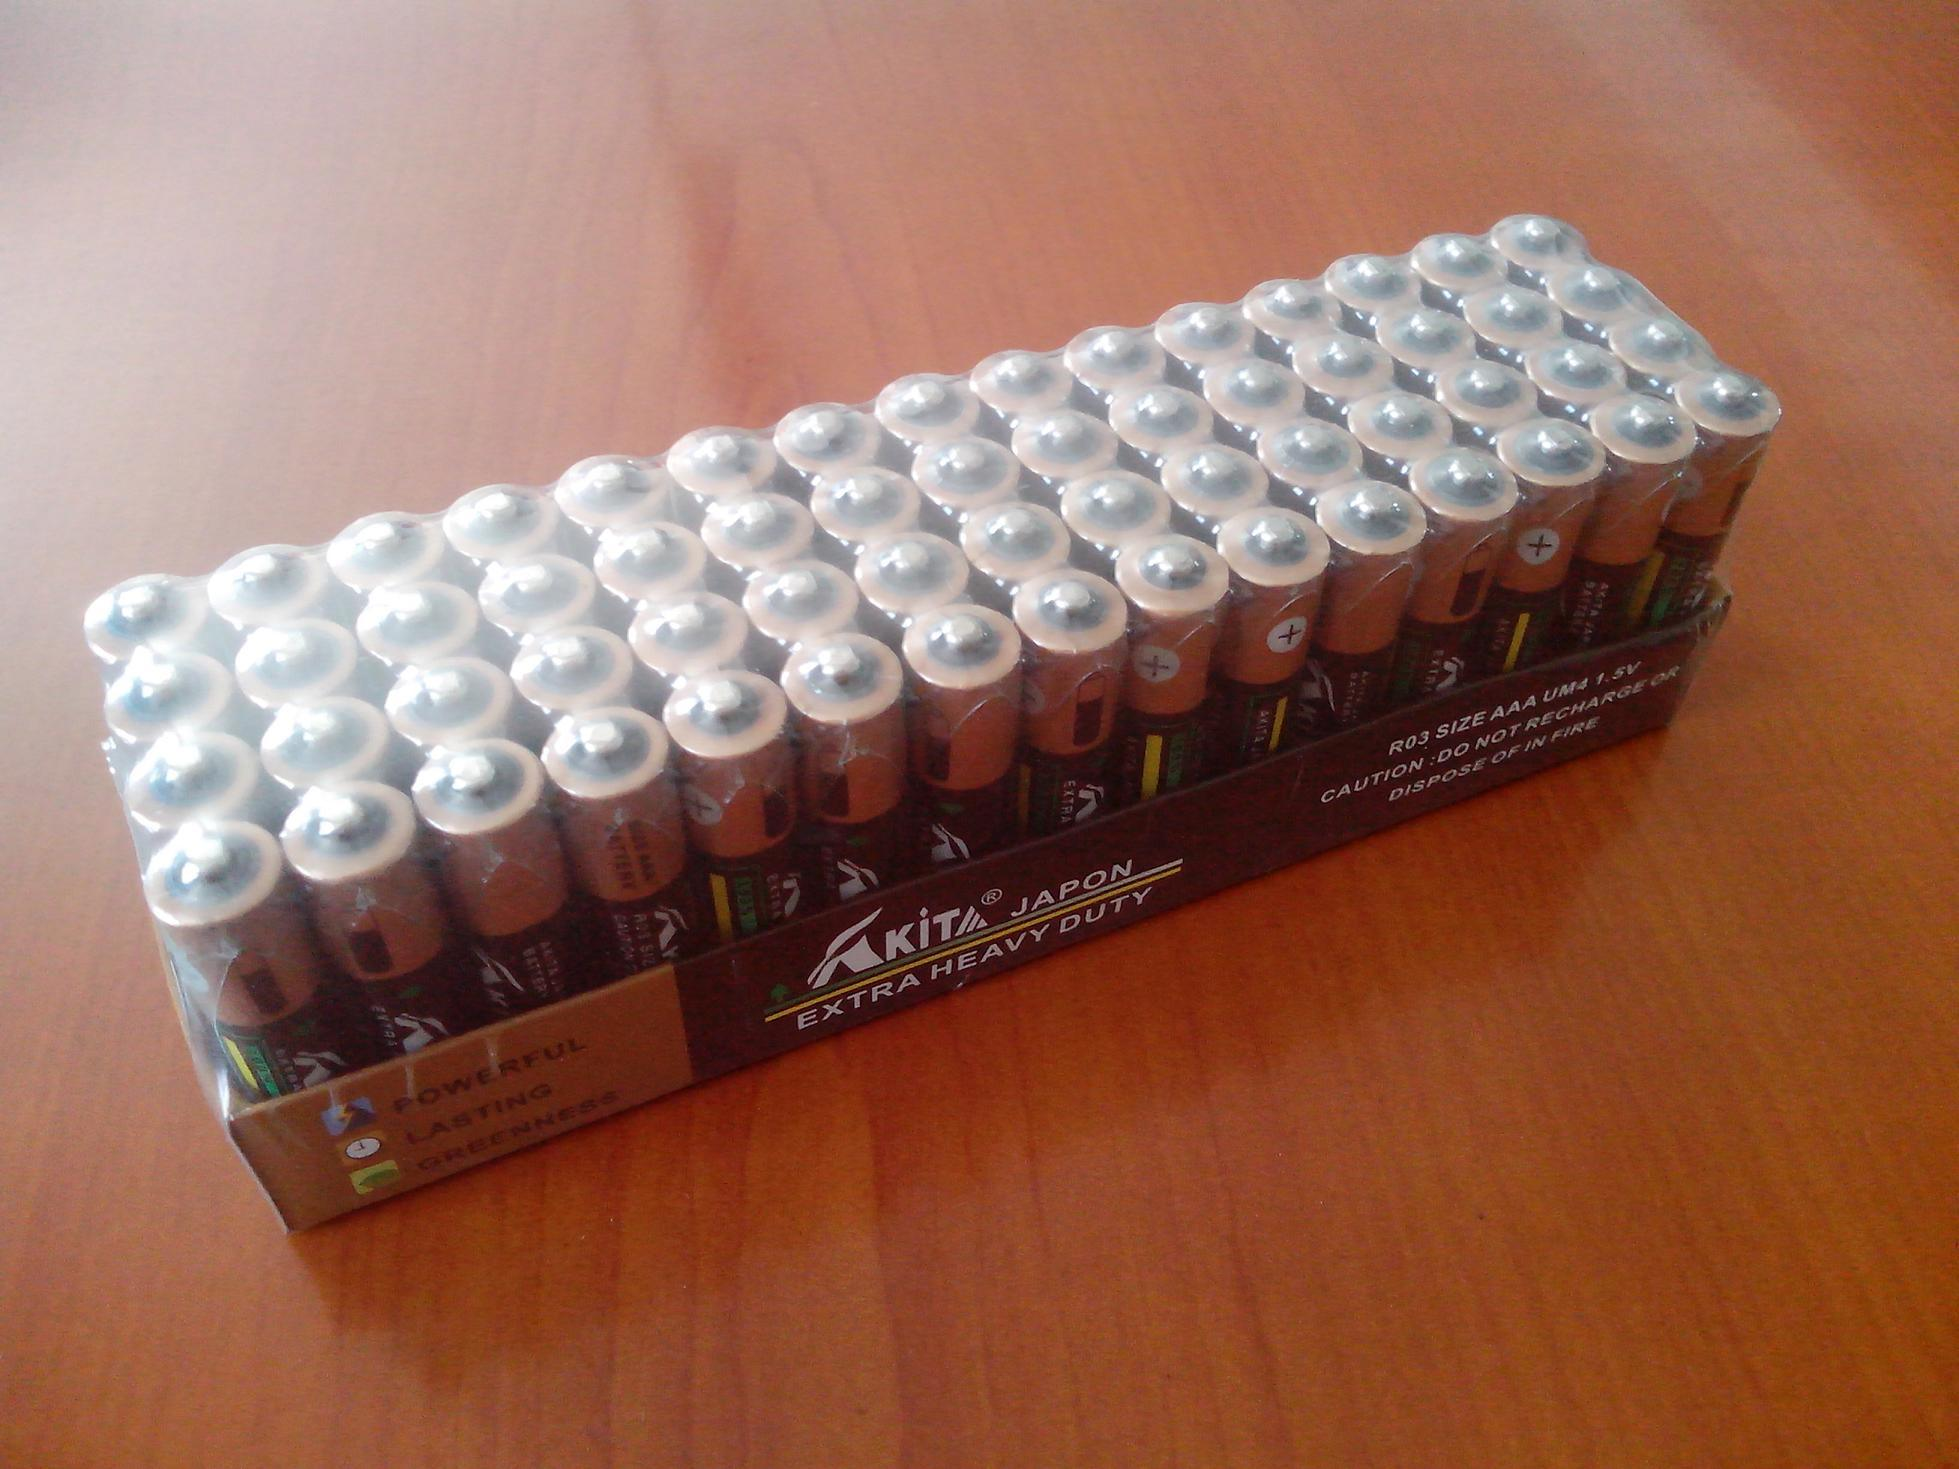 AAA R03 Um4 1.5V Dry Cell Battery in Paper Tray Packing (AAA R03)